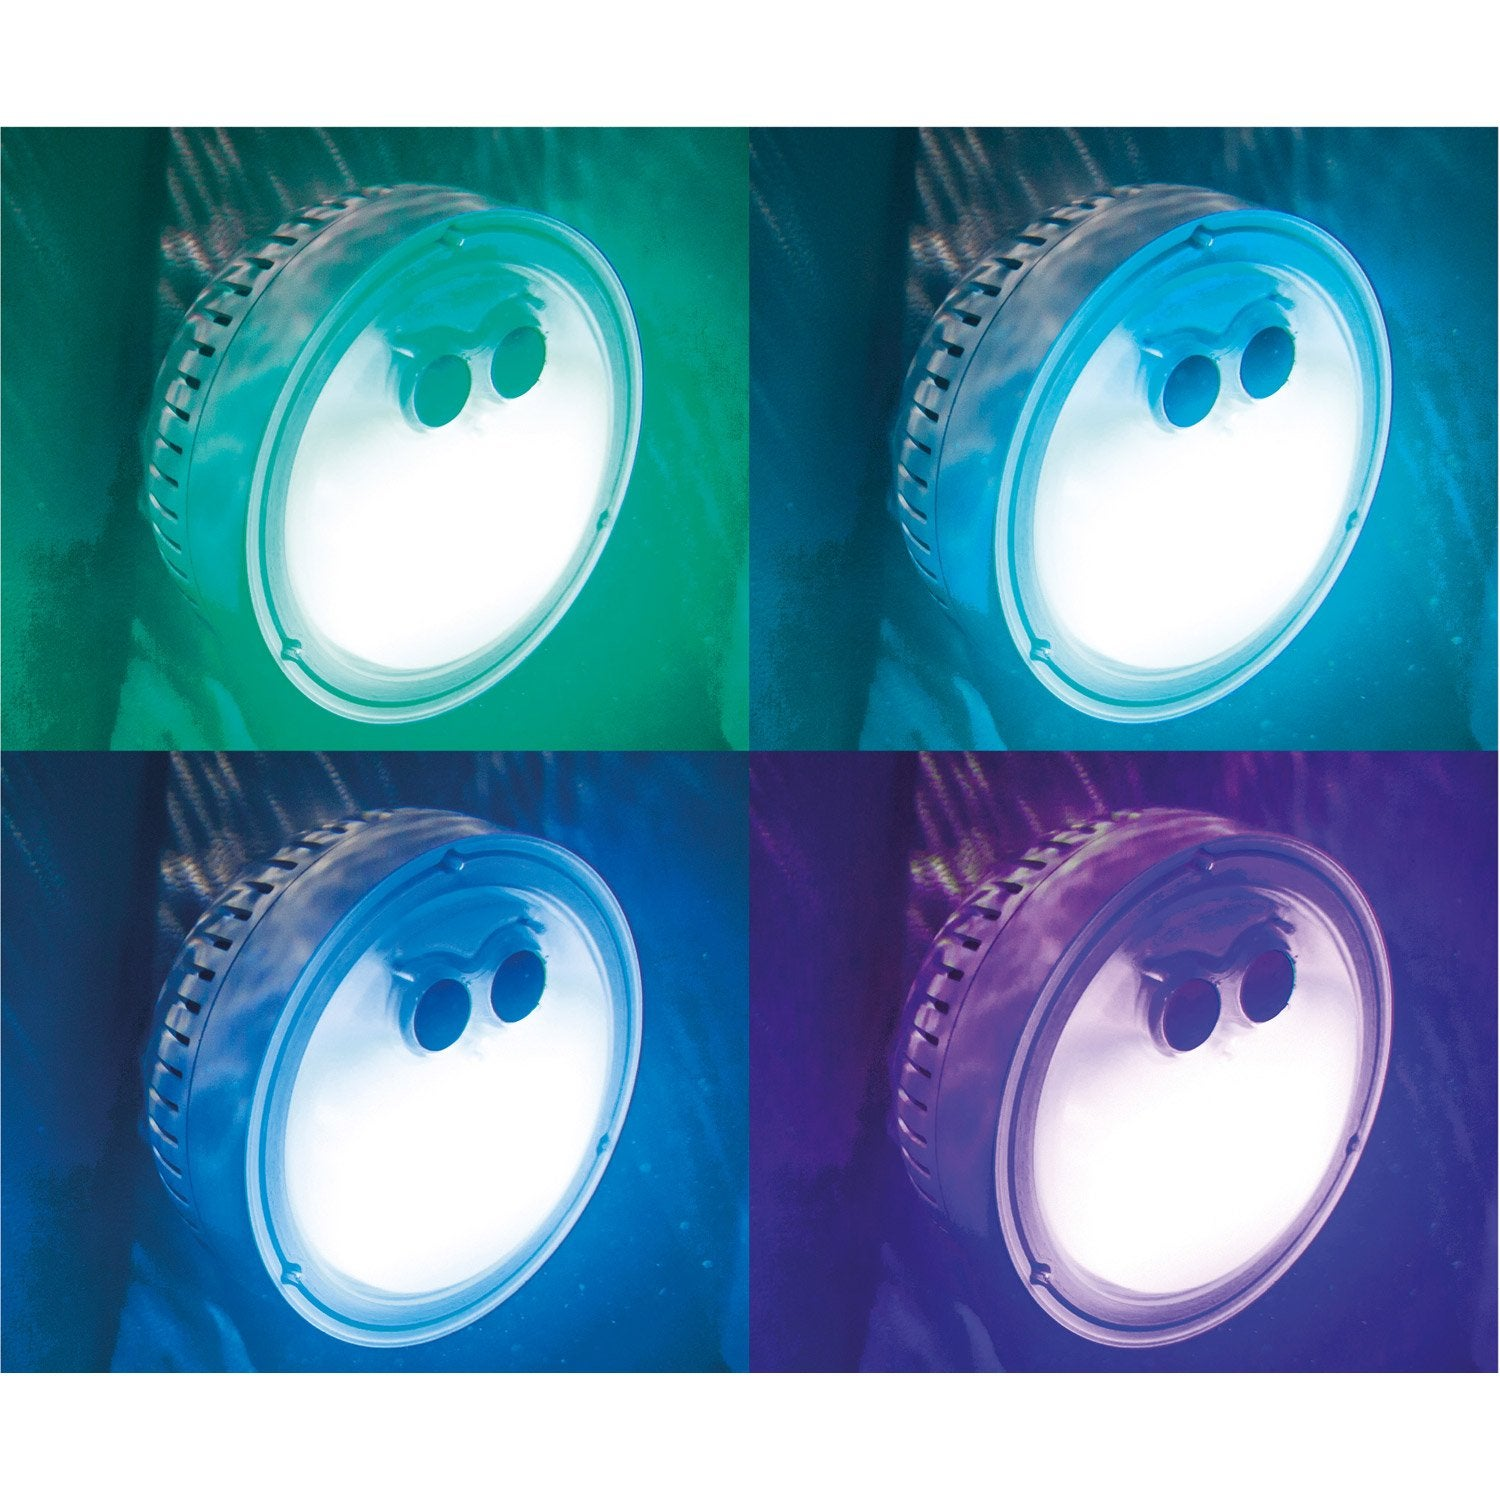 Rond4 Pure Spa Intex Assises Gonflable Bulles Led Places gIY7m6vybf